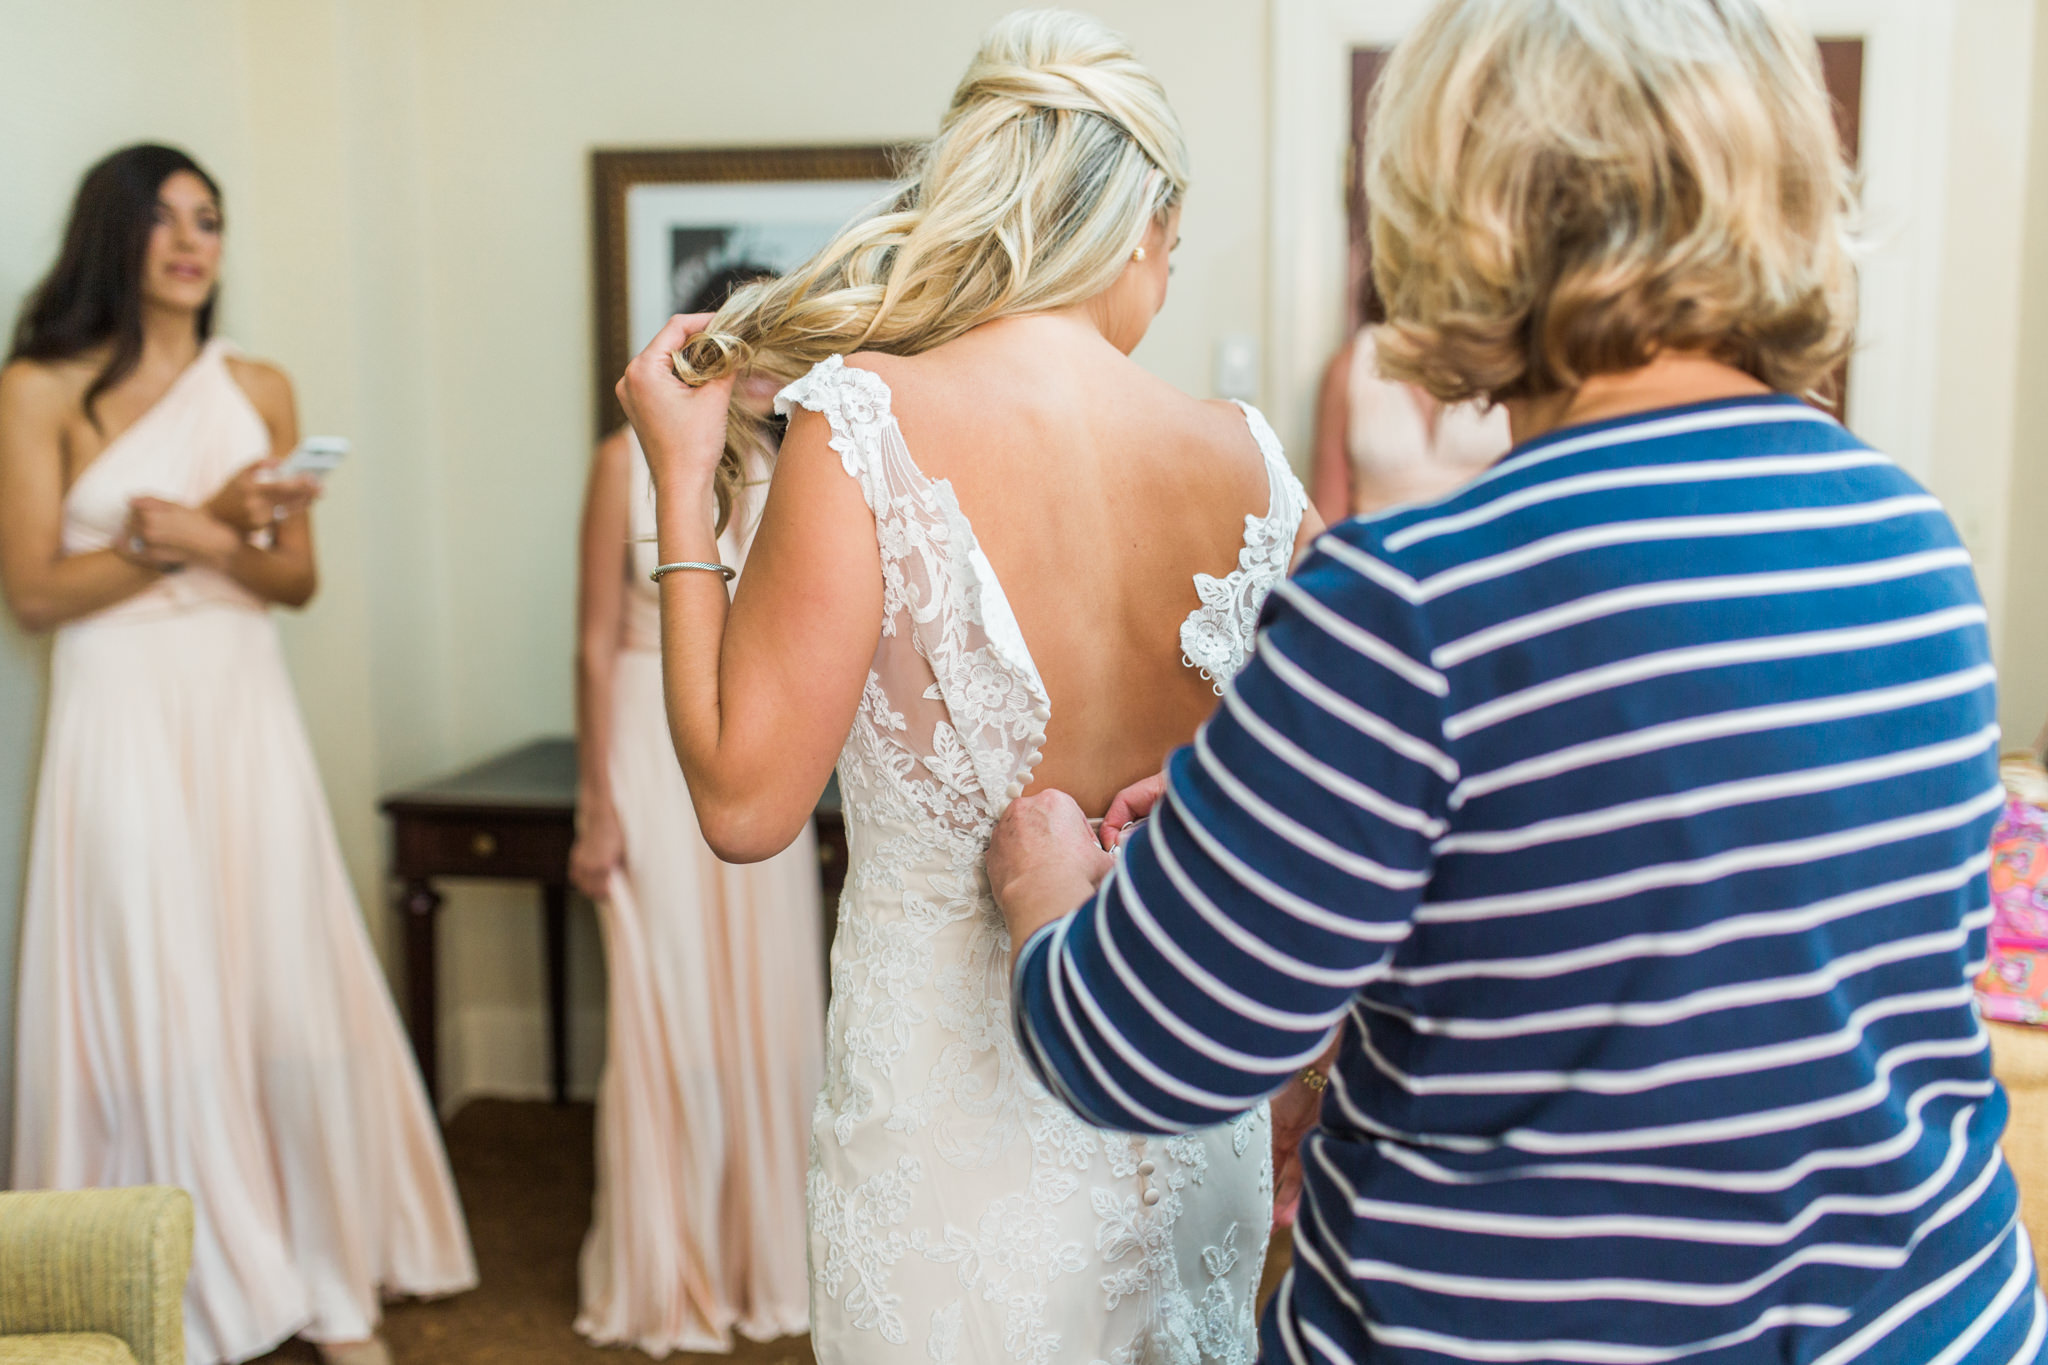 Mother of the bride buttoning her daughter's dress